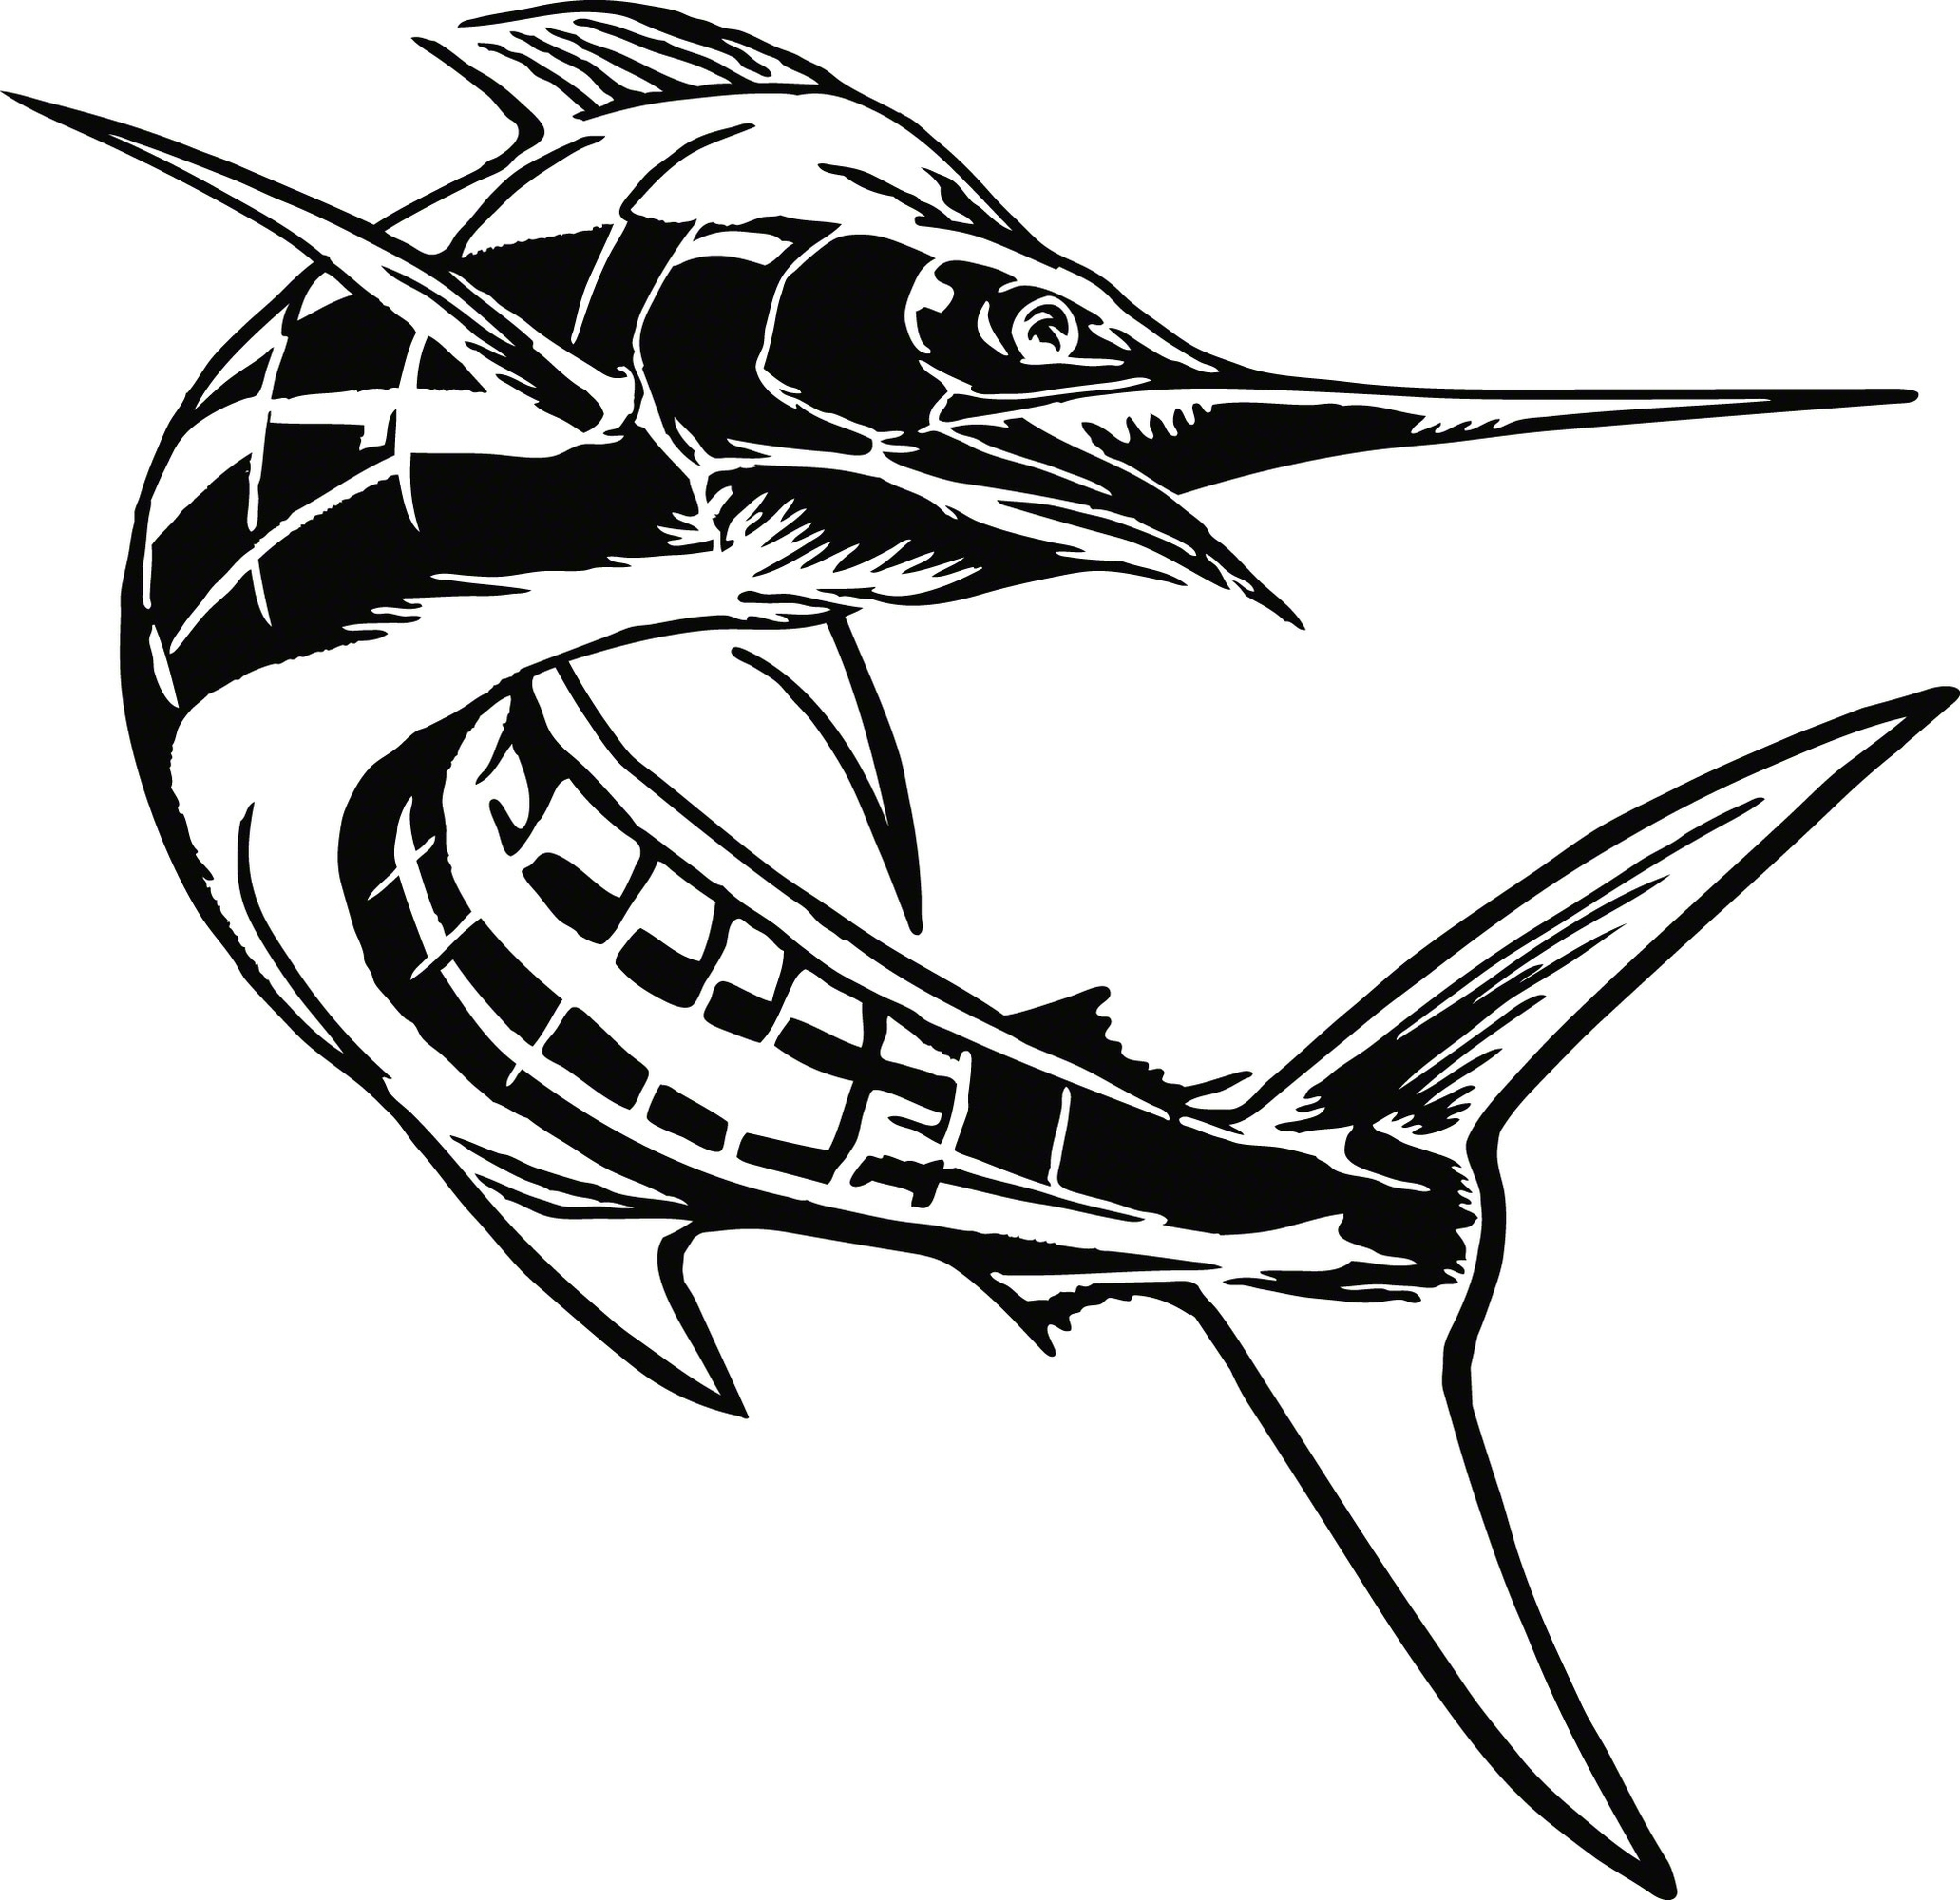 Calcutta Lvecm002 Cut Decal Marlin 7